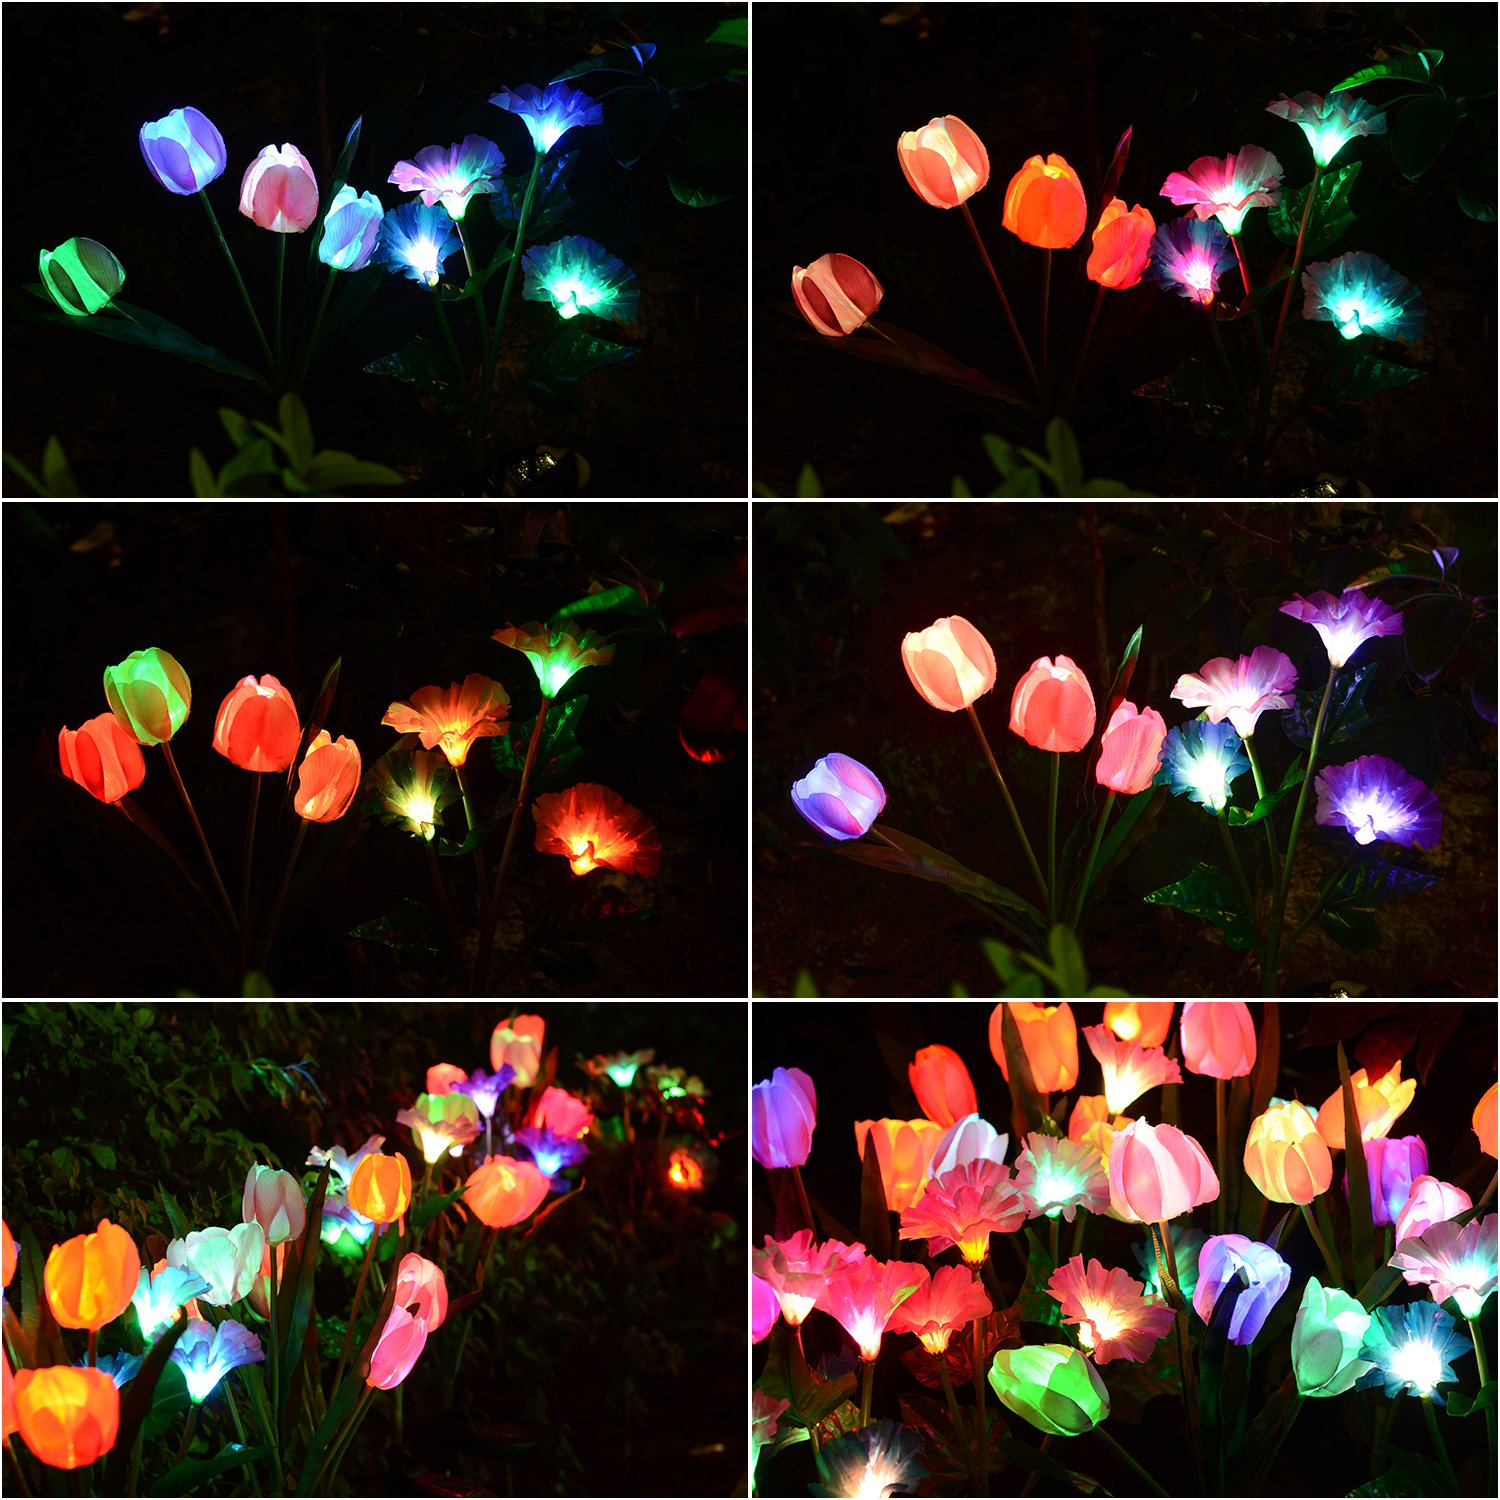 Solarmart Outdoor Solar Garden Lights   2 Pack Solar Powered Lights, Multi  Color Changing LED Solar Stake Lights For Garden, Patio, Backyard (Tulip  And ...